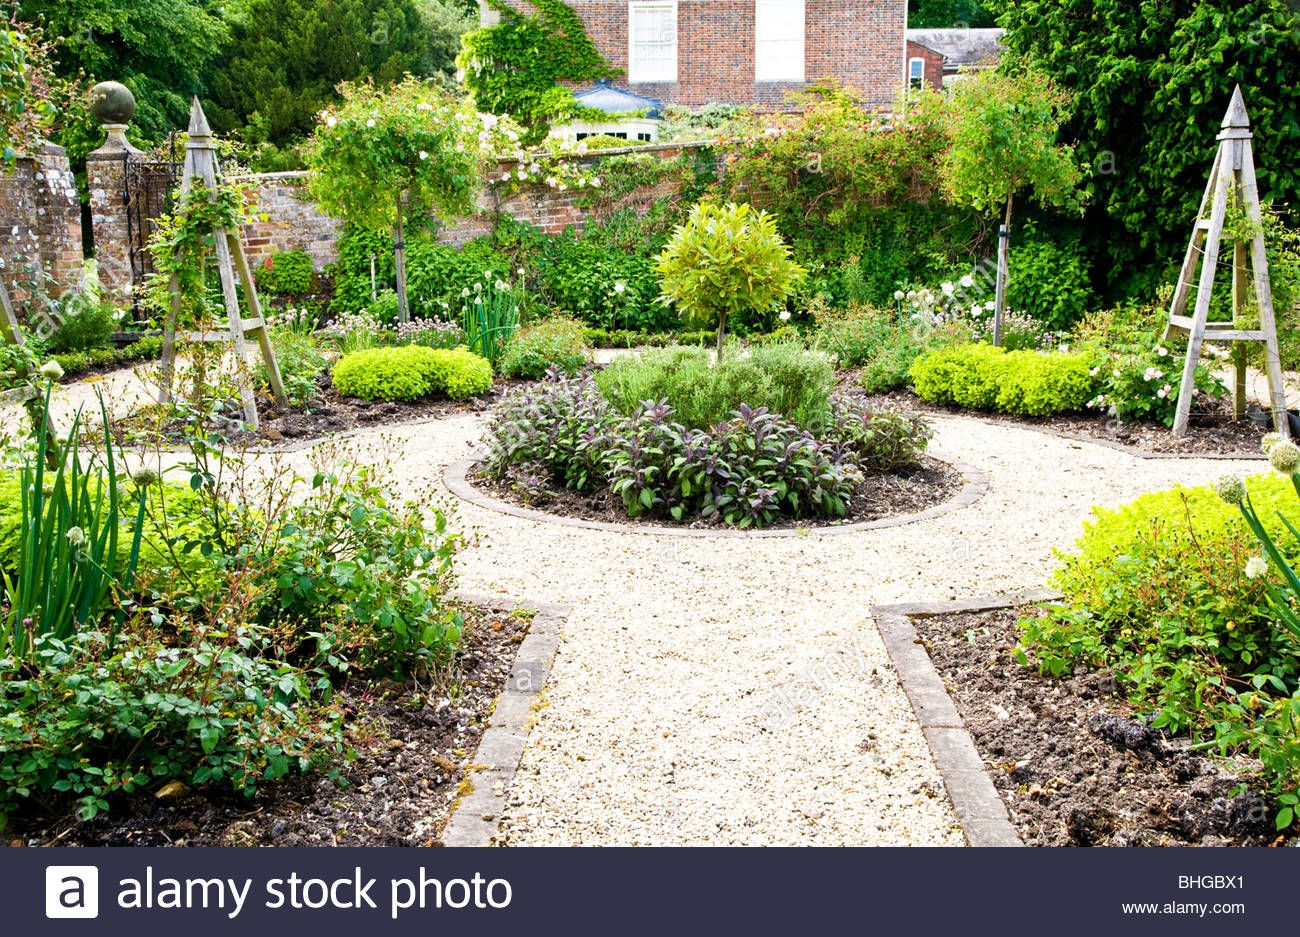 A Formal Herb Or Kitchen Garden In The Grounds Of An English Garden Layout Kitchen Garden Herb Garden Design